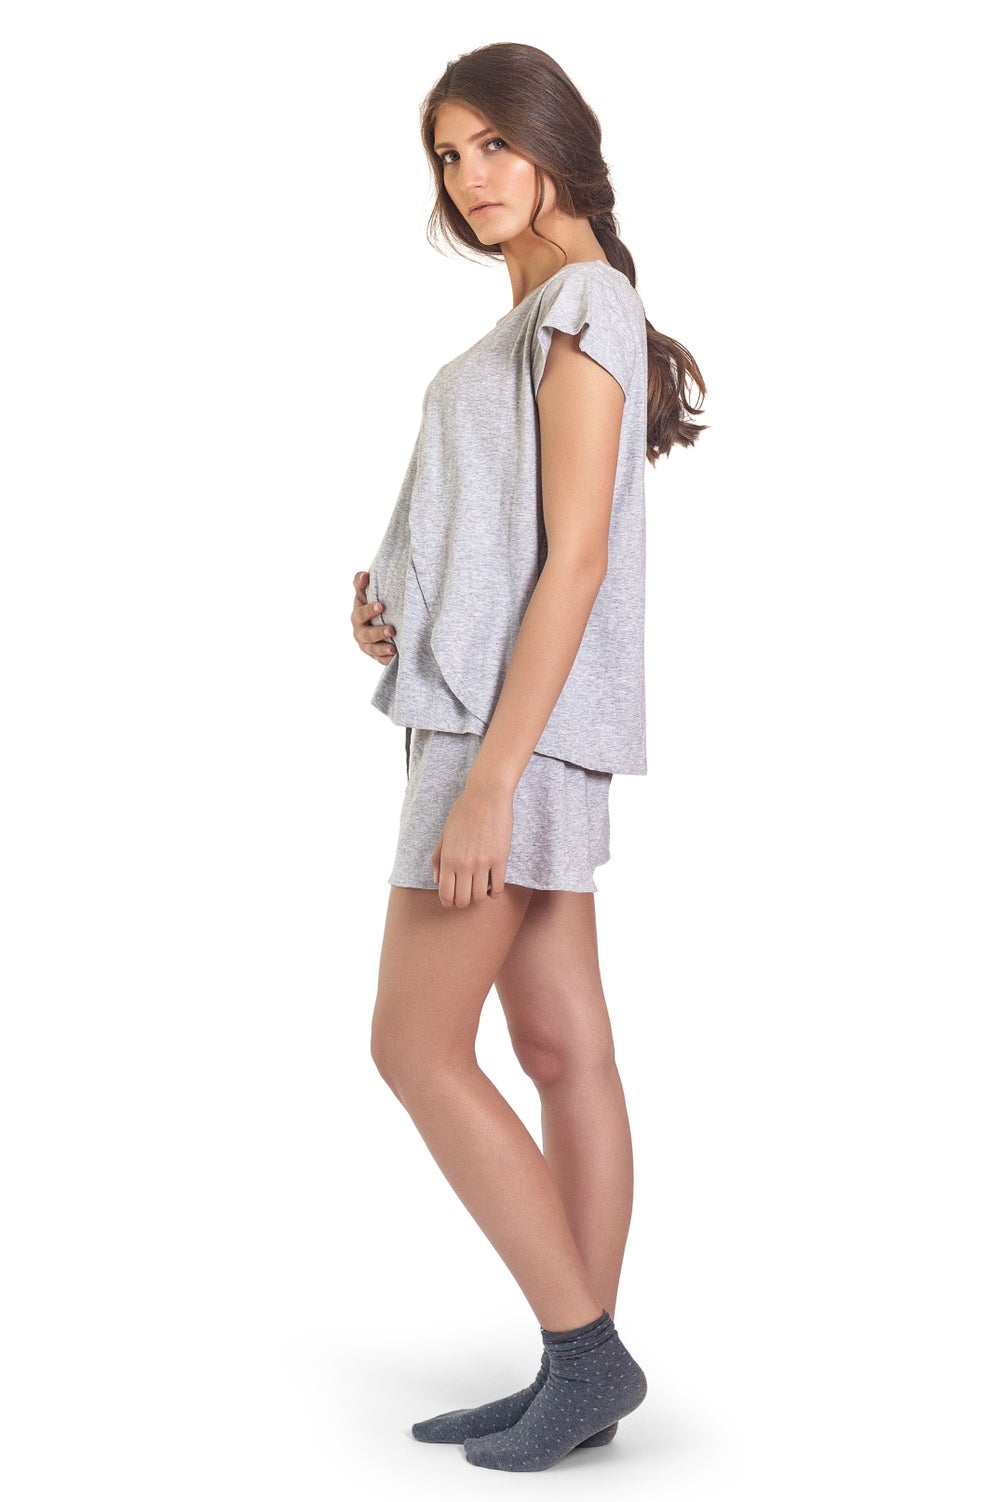 Image of NURSING PJ SALE CLP $18.000